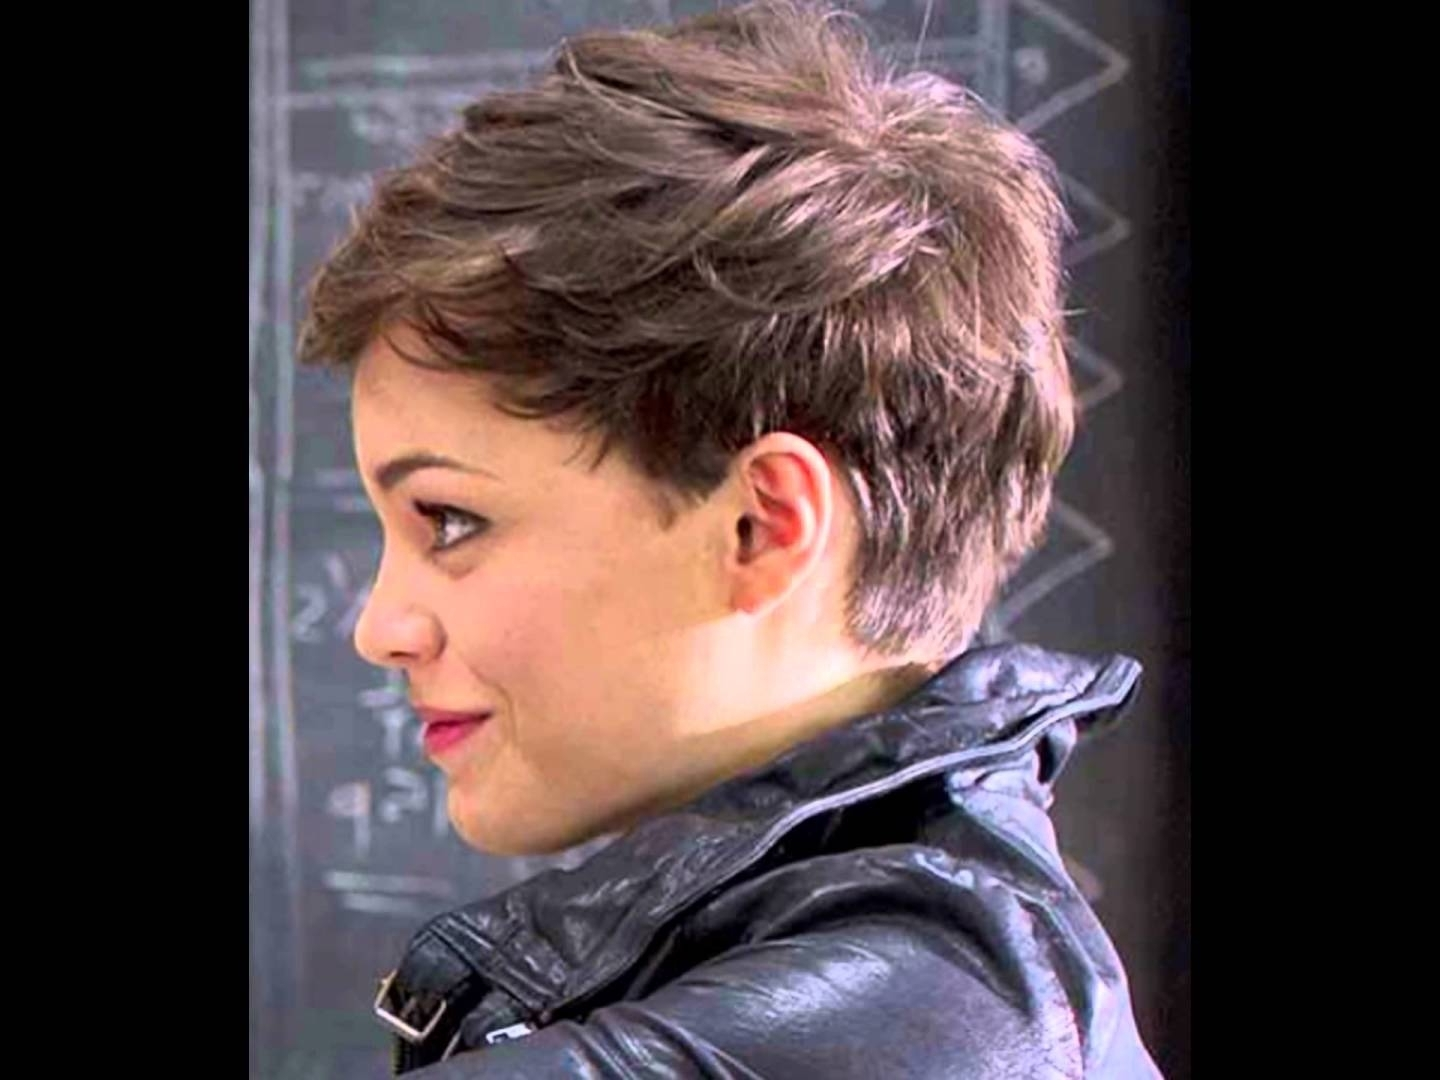 photos of pixie hairstyles on round faces (showing 11 of 15 photos)